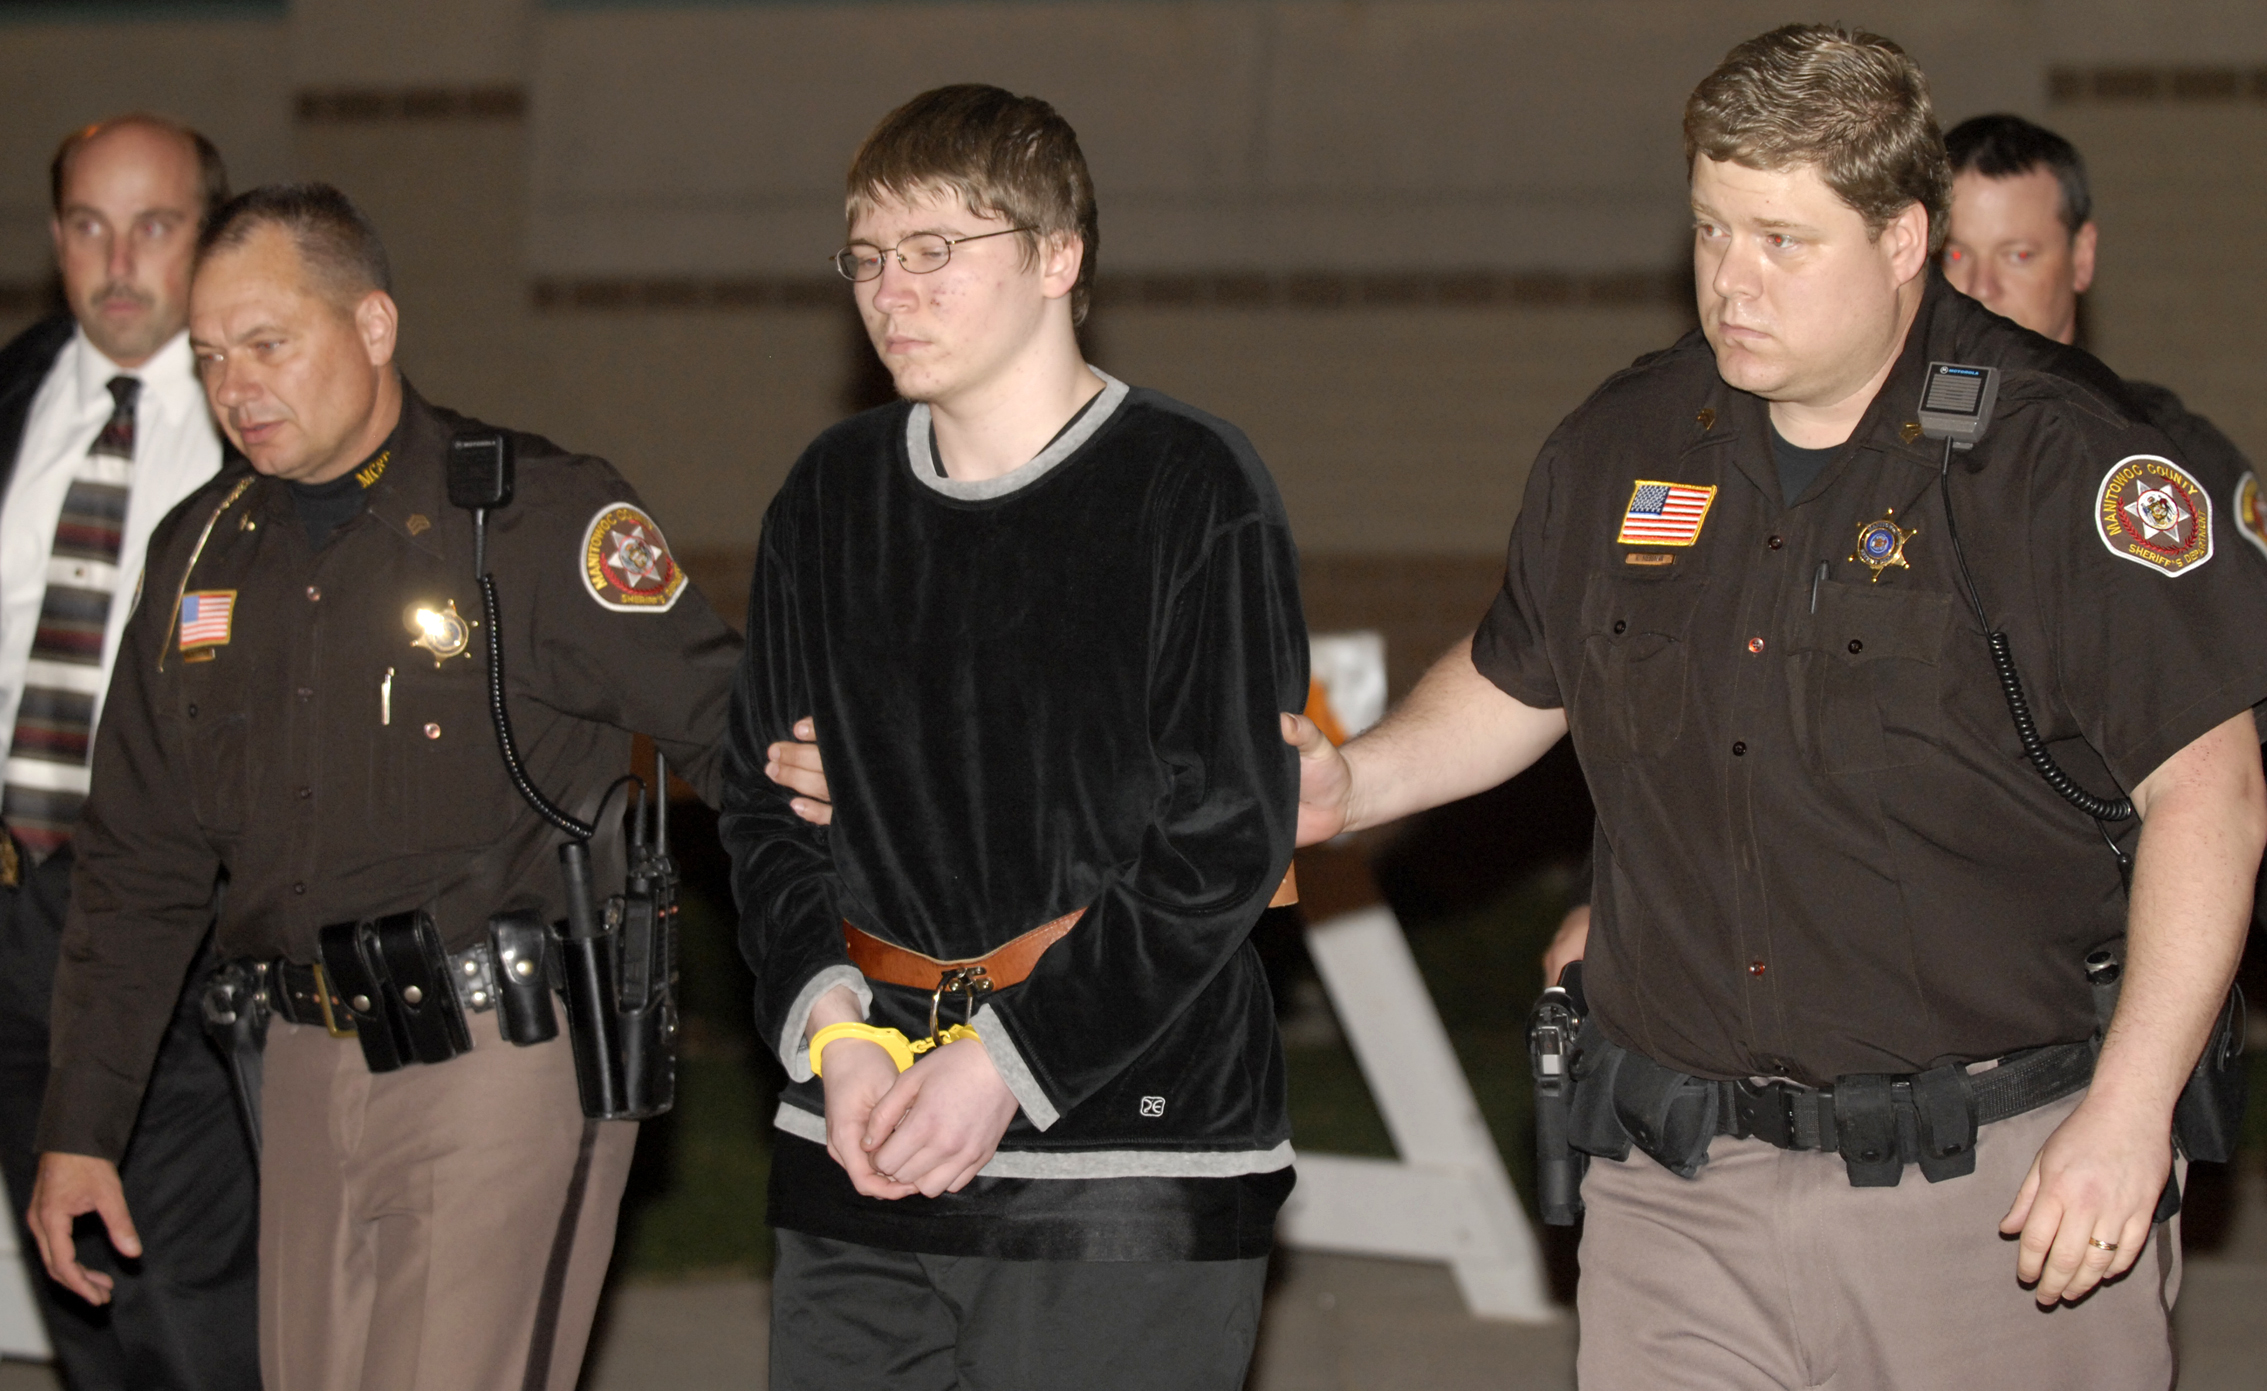 Brendan Dassey walks to the courthouse to hear the verdict in his case Wednesday night, April 25, 2007, in Manitowoc, Wis. (Sue Pischke, Pool/AP Photo)